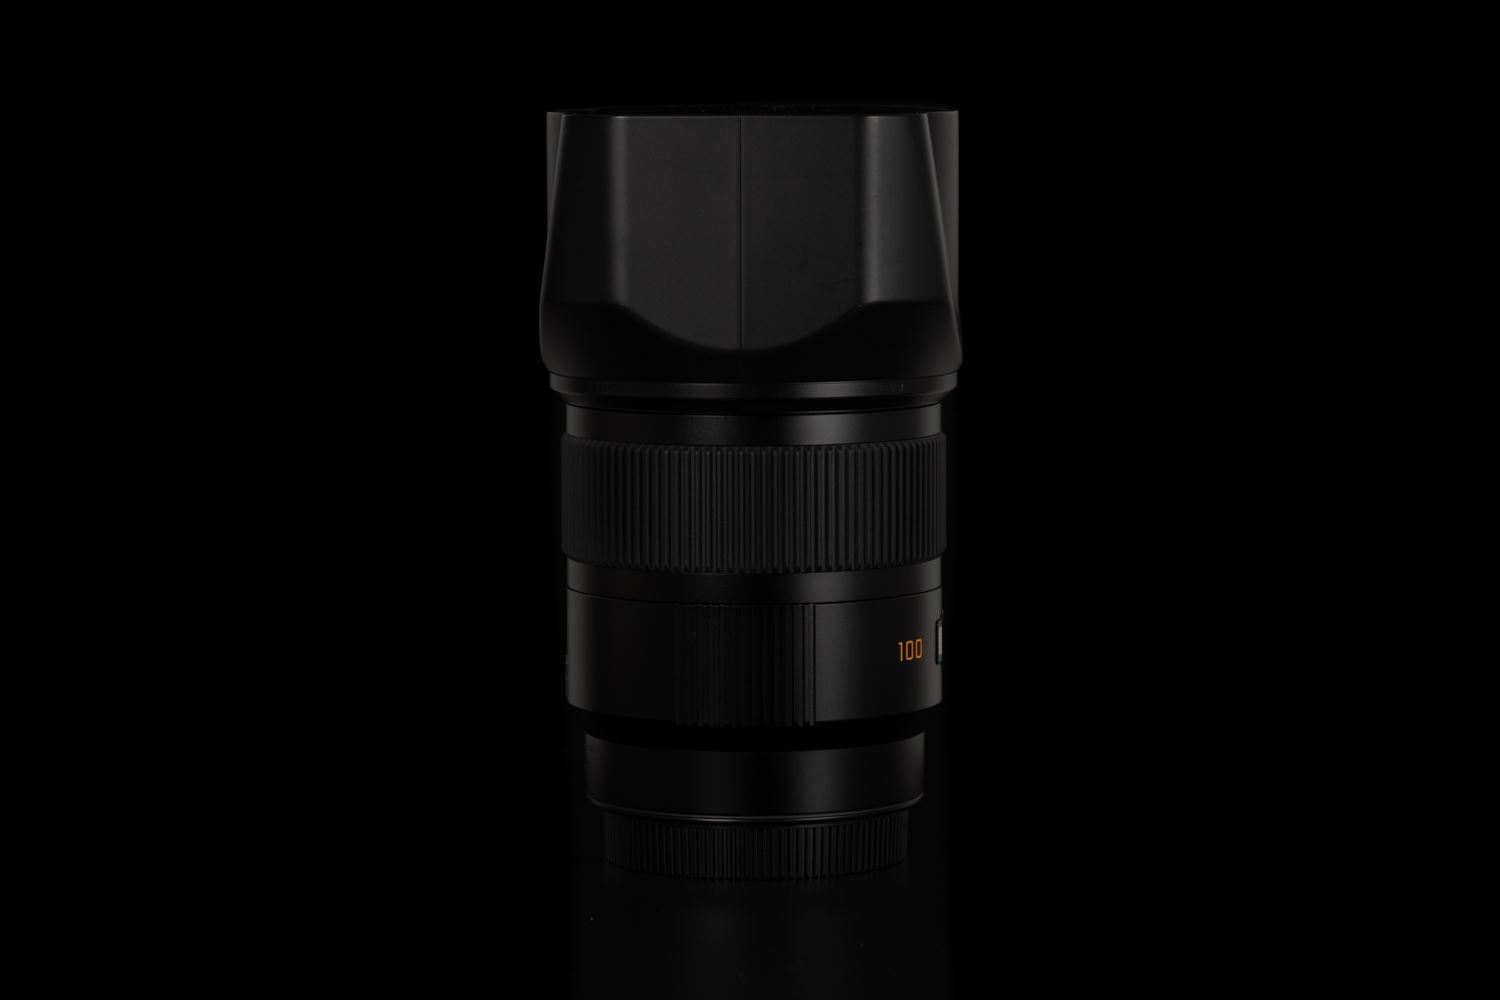 Picture of Leica Summicron-S 100mm f/2 ASPH